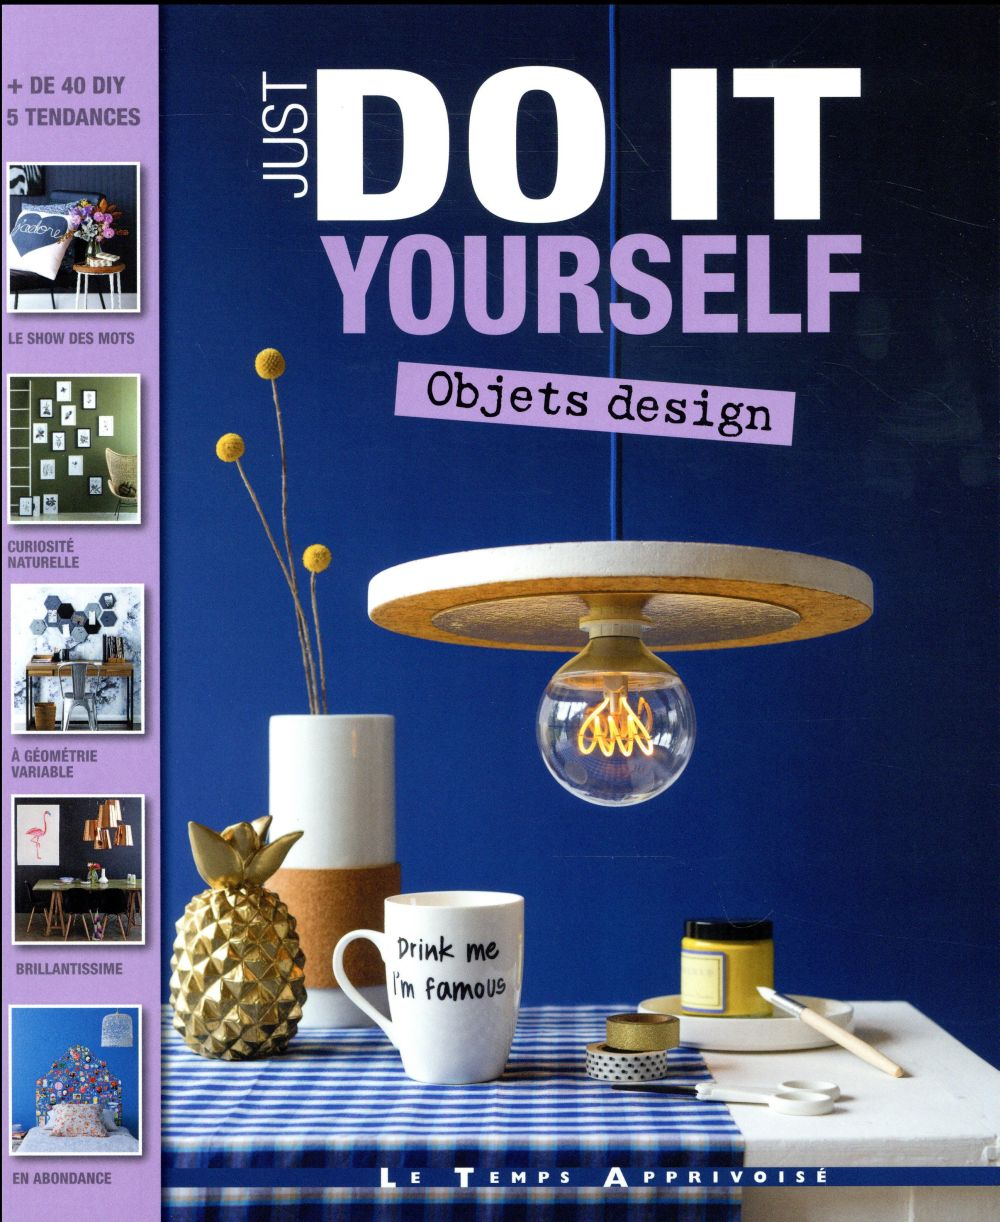 Just do it yourself ; objets design